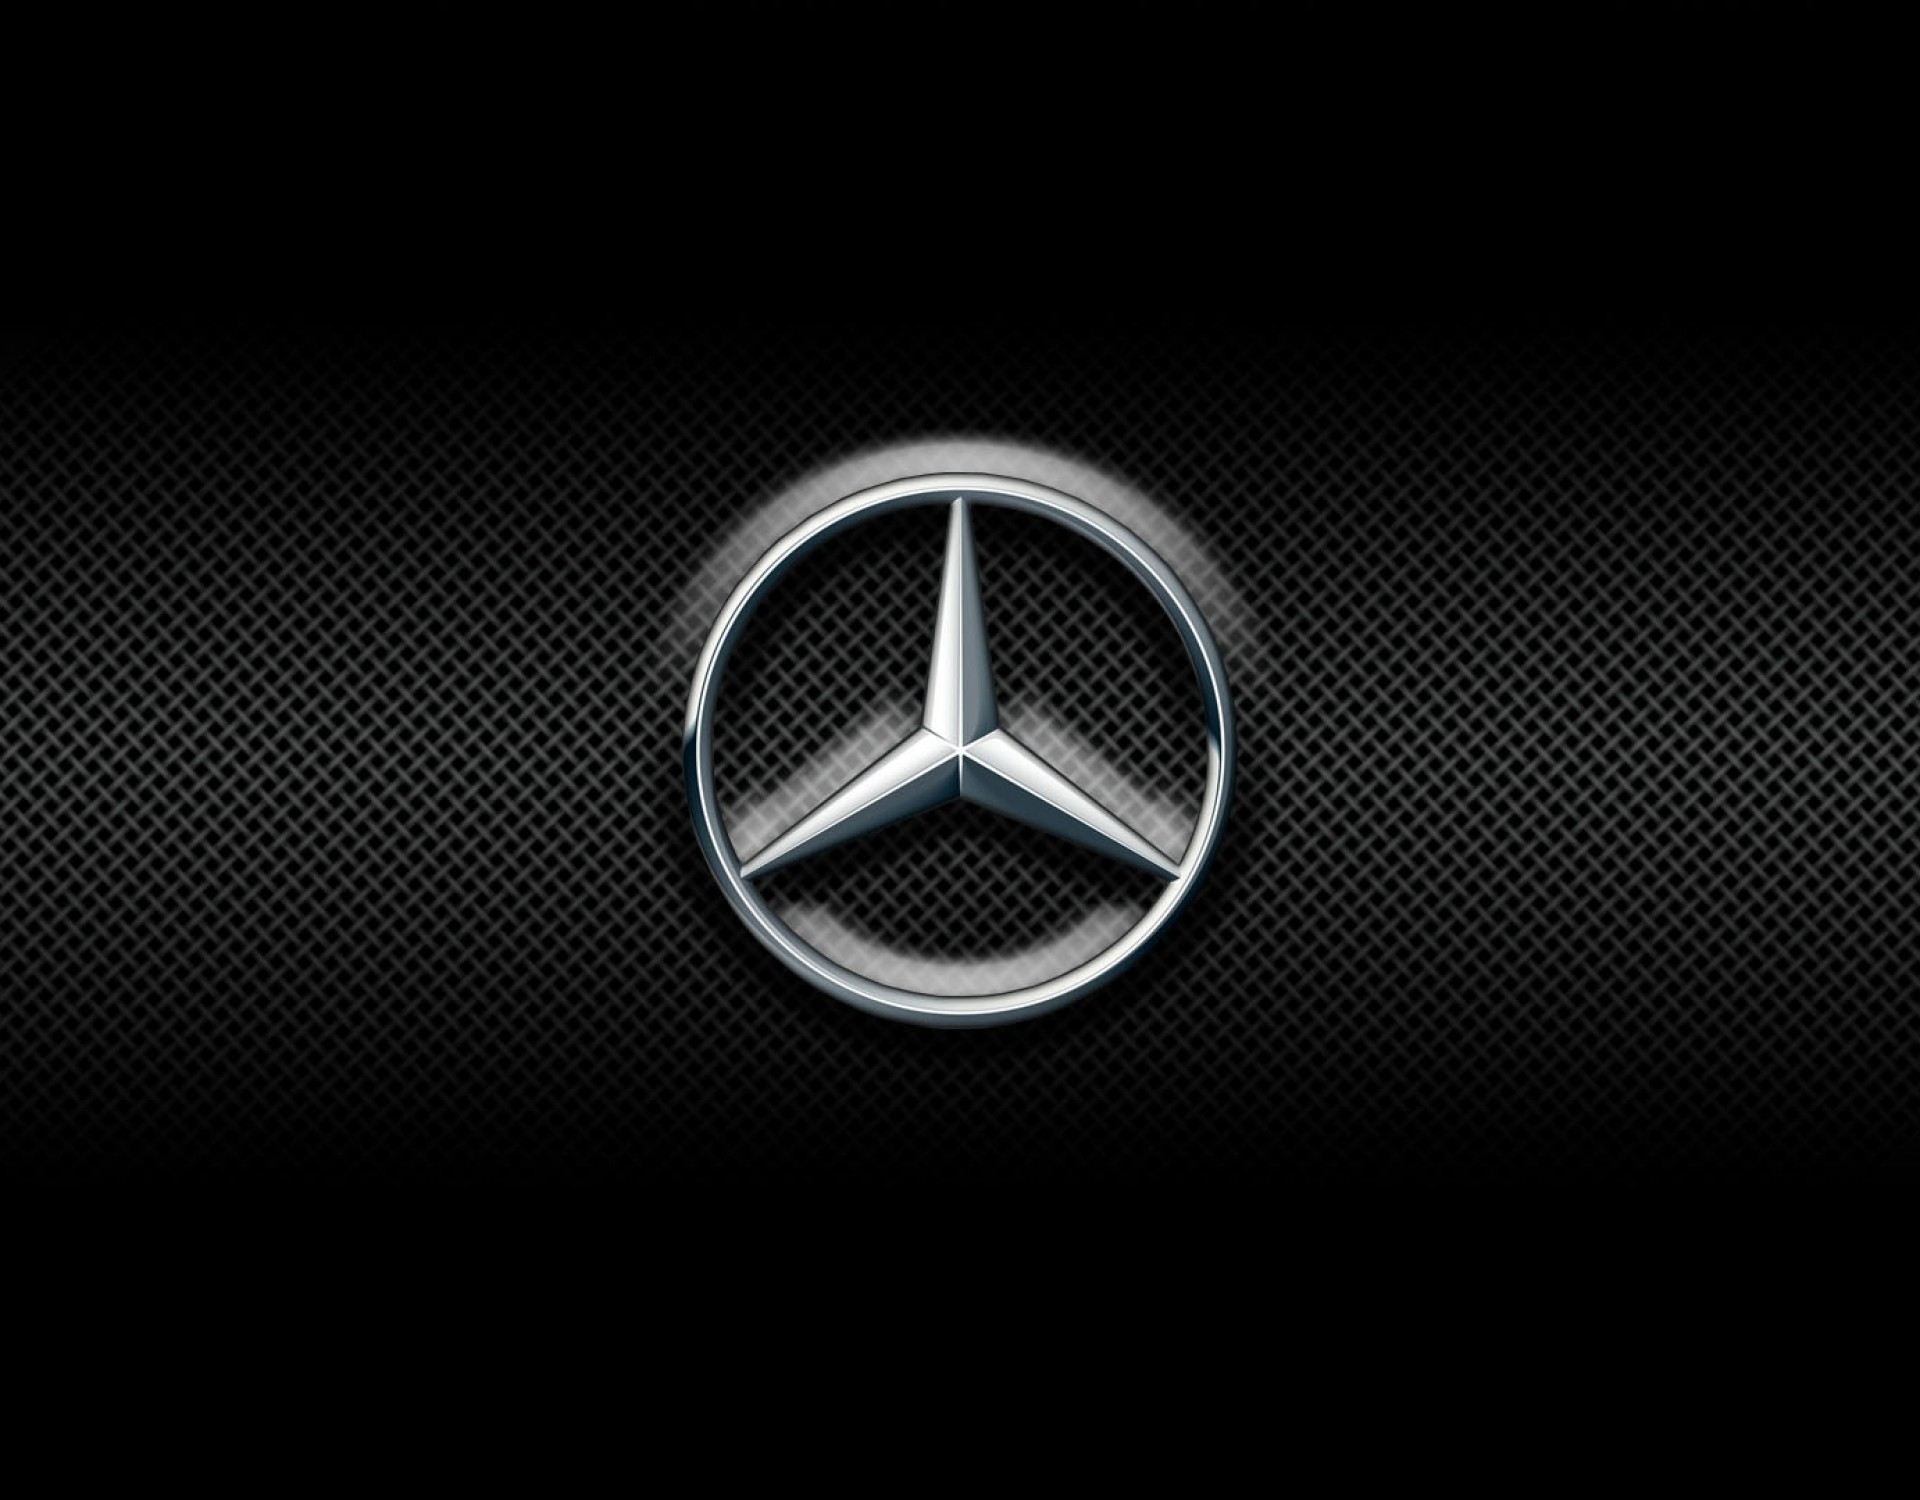 1920x1500 Mercedes Logo Wallpapers: Find best latest Mercedes Logo Wallpapers in HD  for your PC desktop